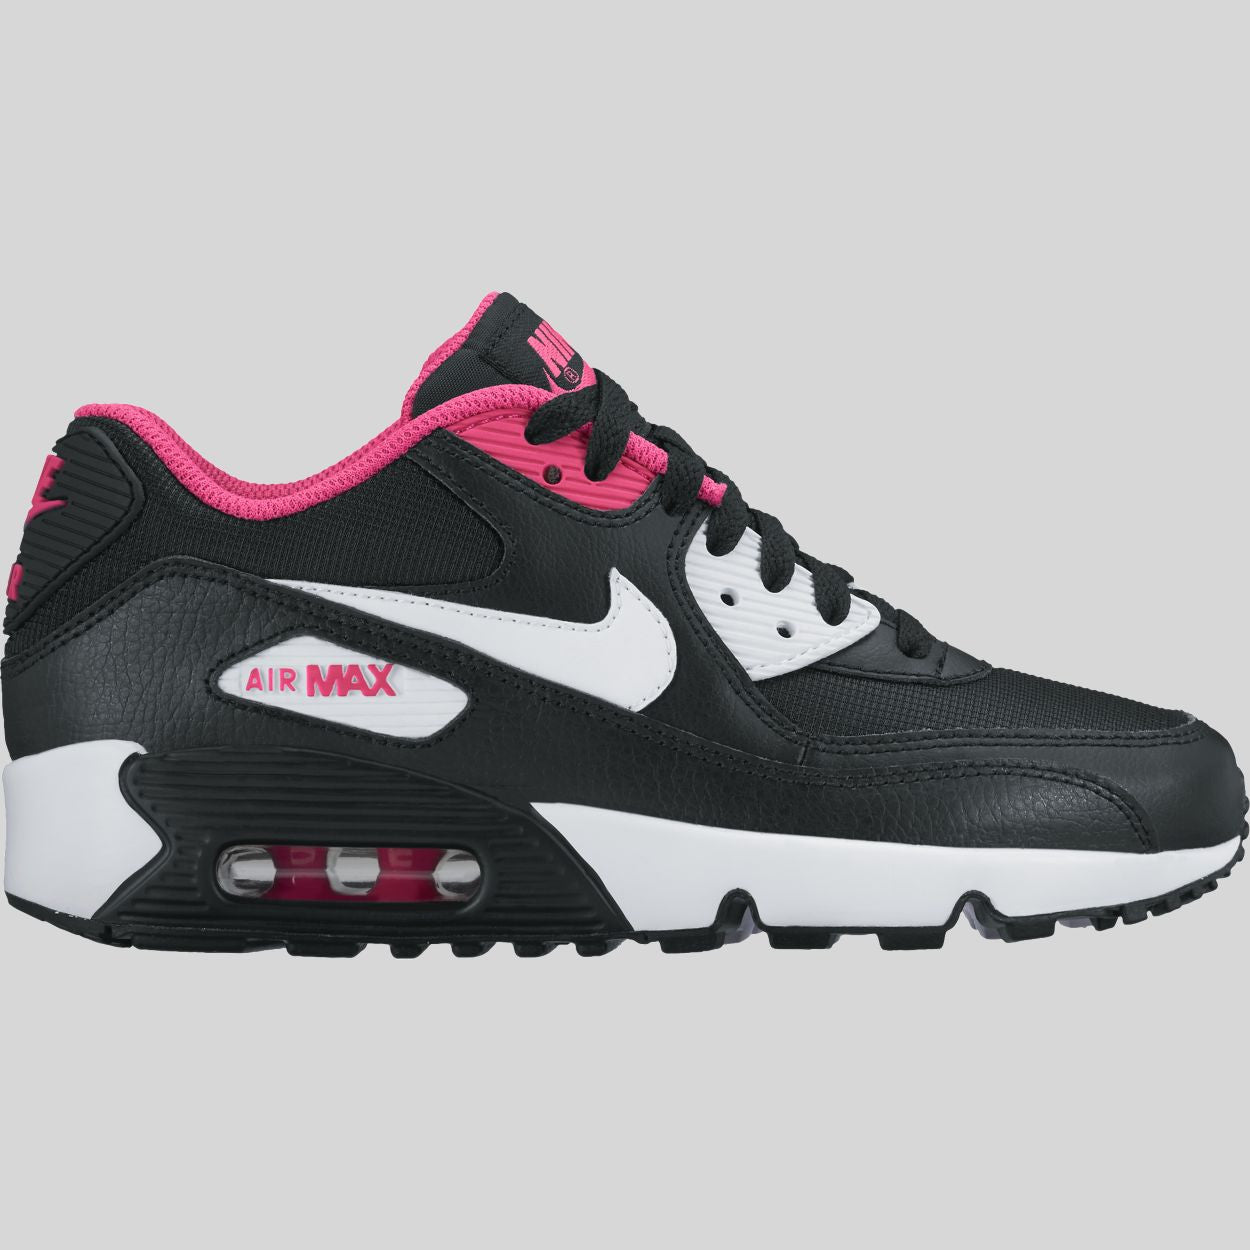 the best attitude a14cc 33a93 Nike Air Max 90 Mesh (GS) Black White Vivid Pink (833340-002